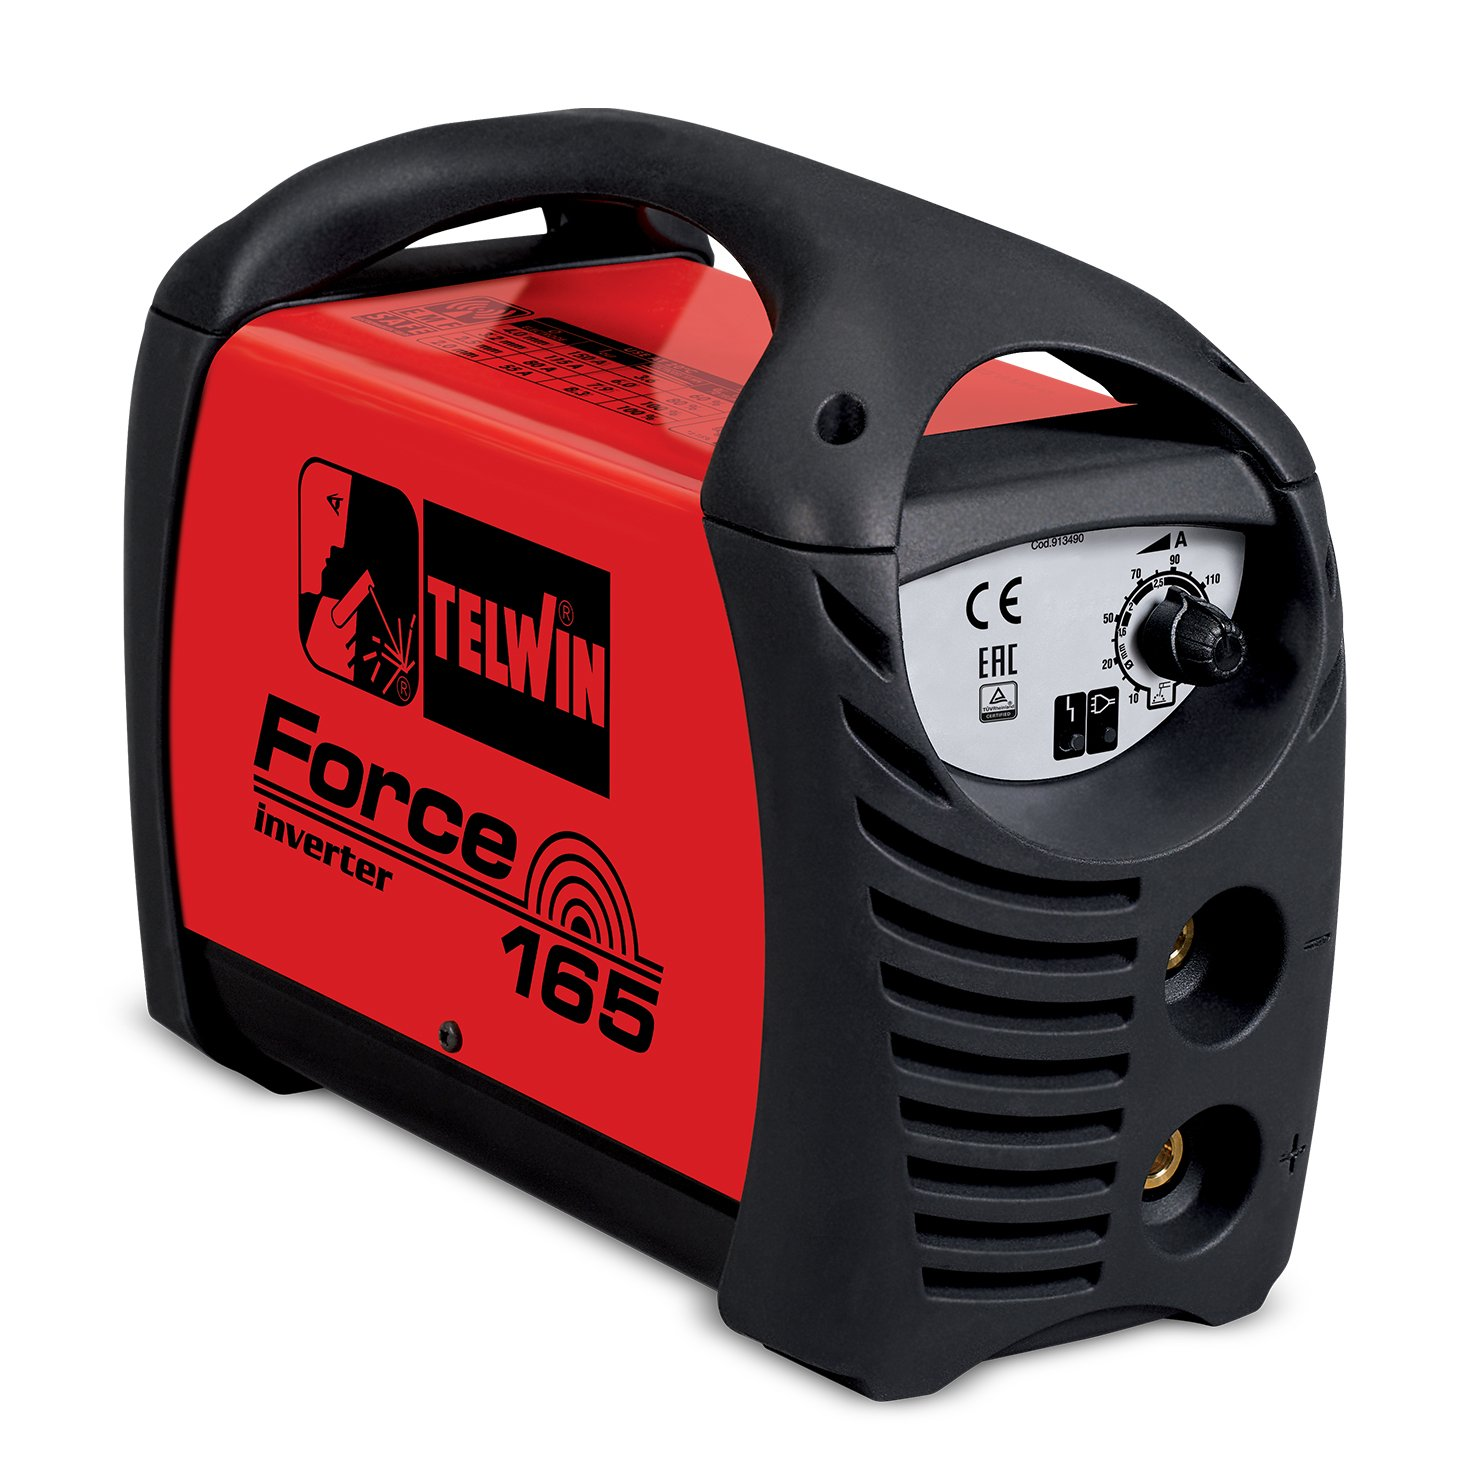 Telwin Force 165 - Soldadora electrodos MMA inverter: Amazon.es: Amazon.es